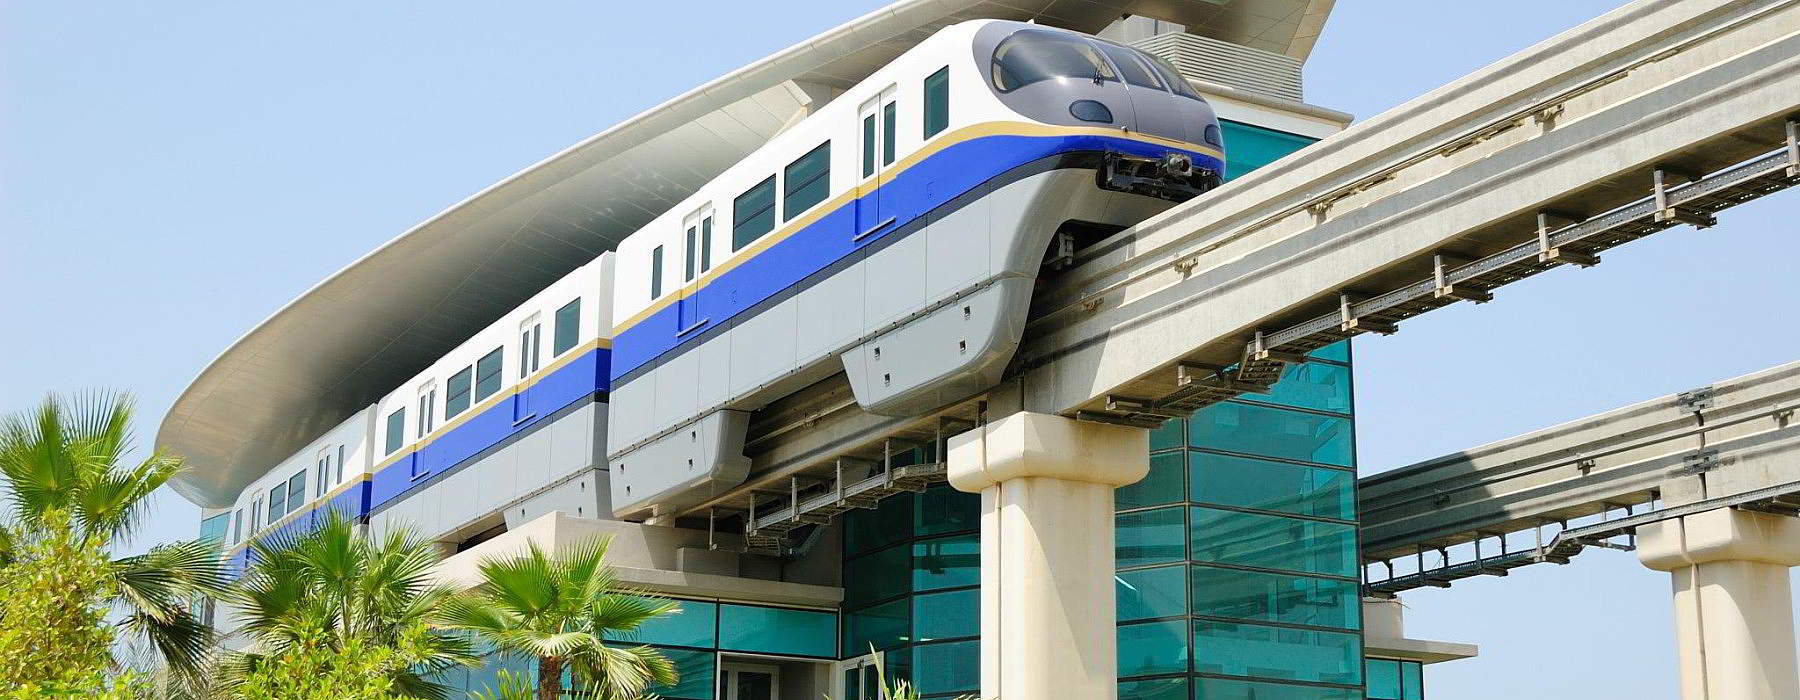 Dubai getting around monorail